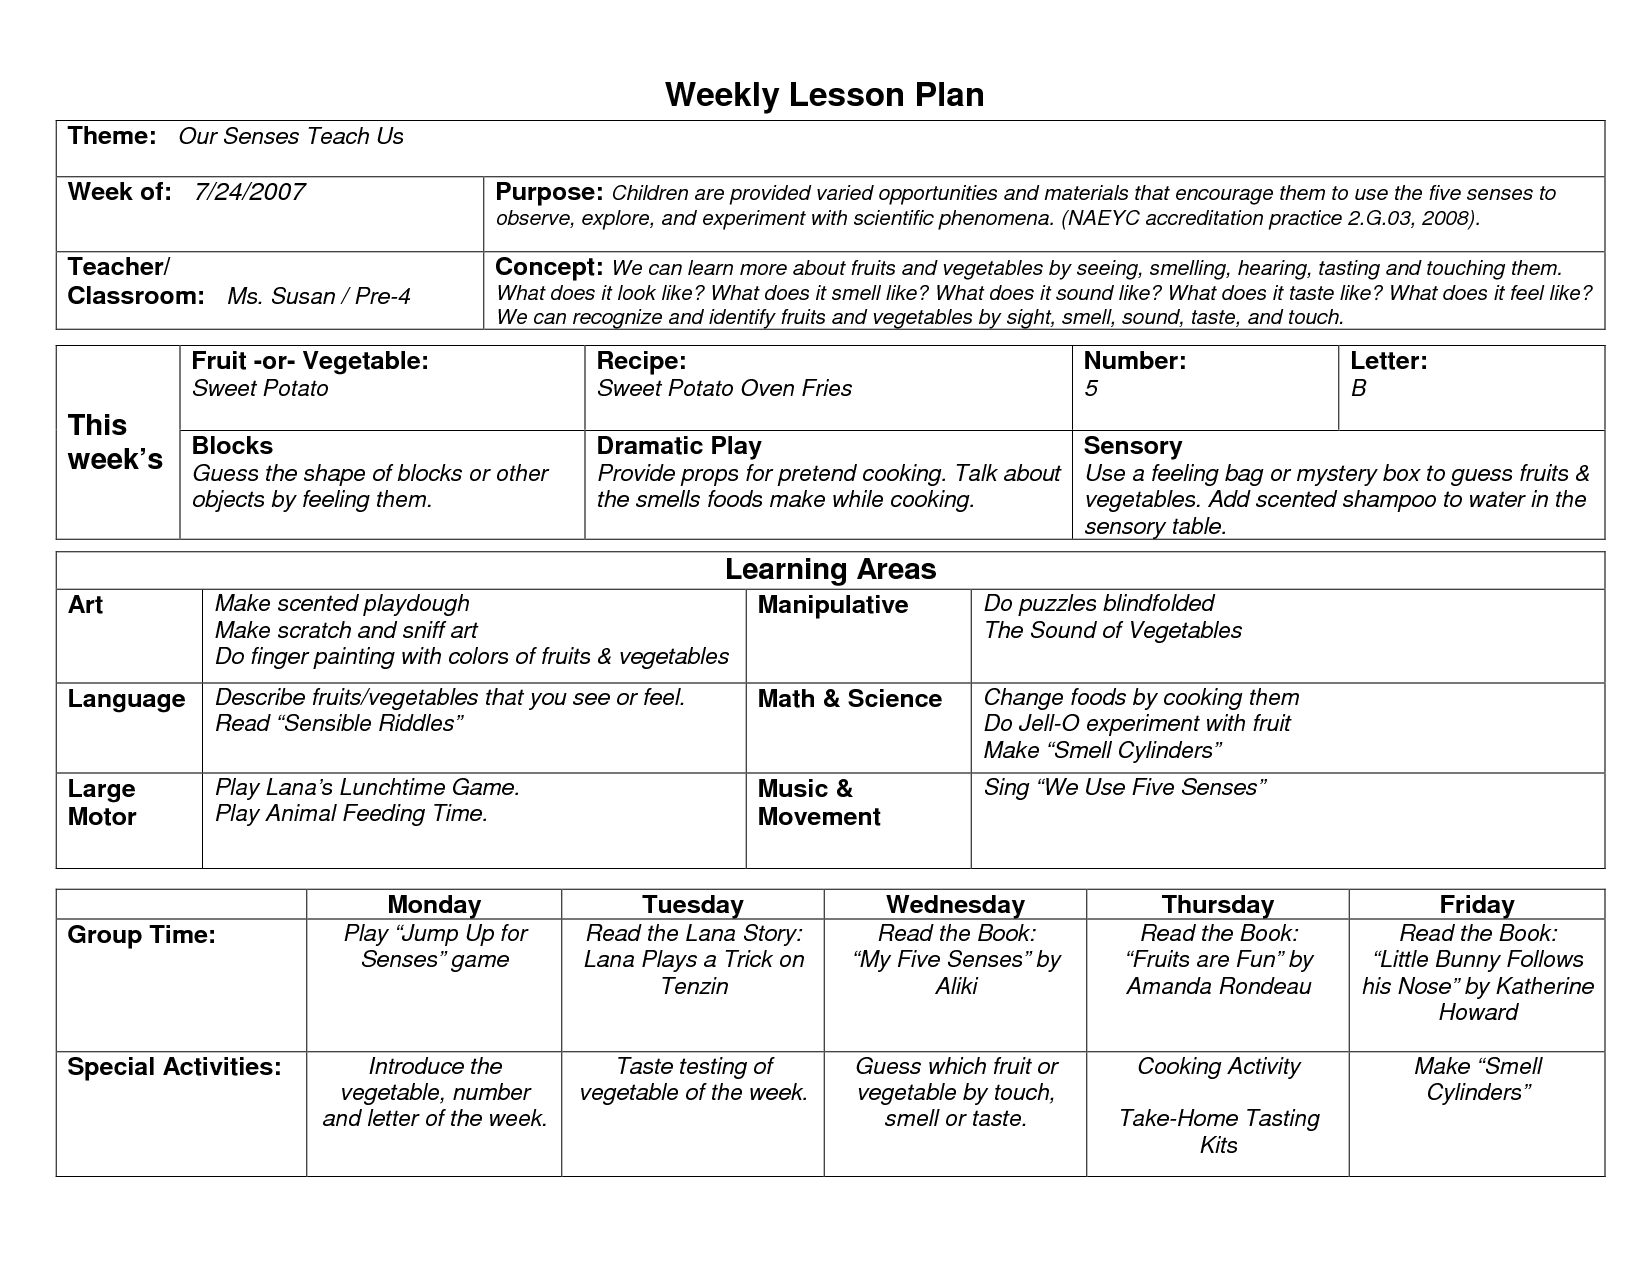 NAEYC Lesson Plan Template for Preschool – Lesson Plan Sample in Word